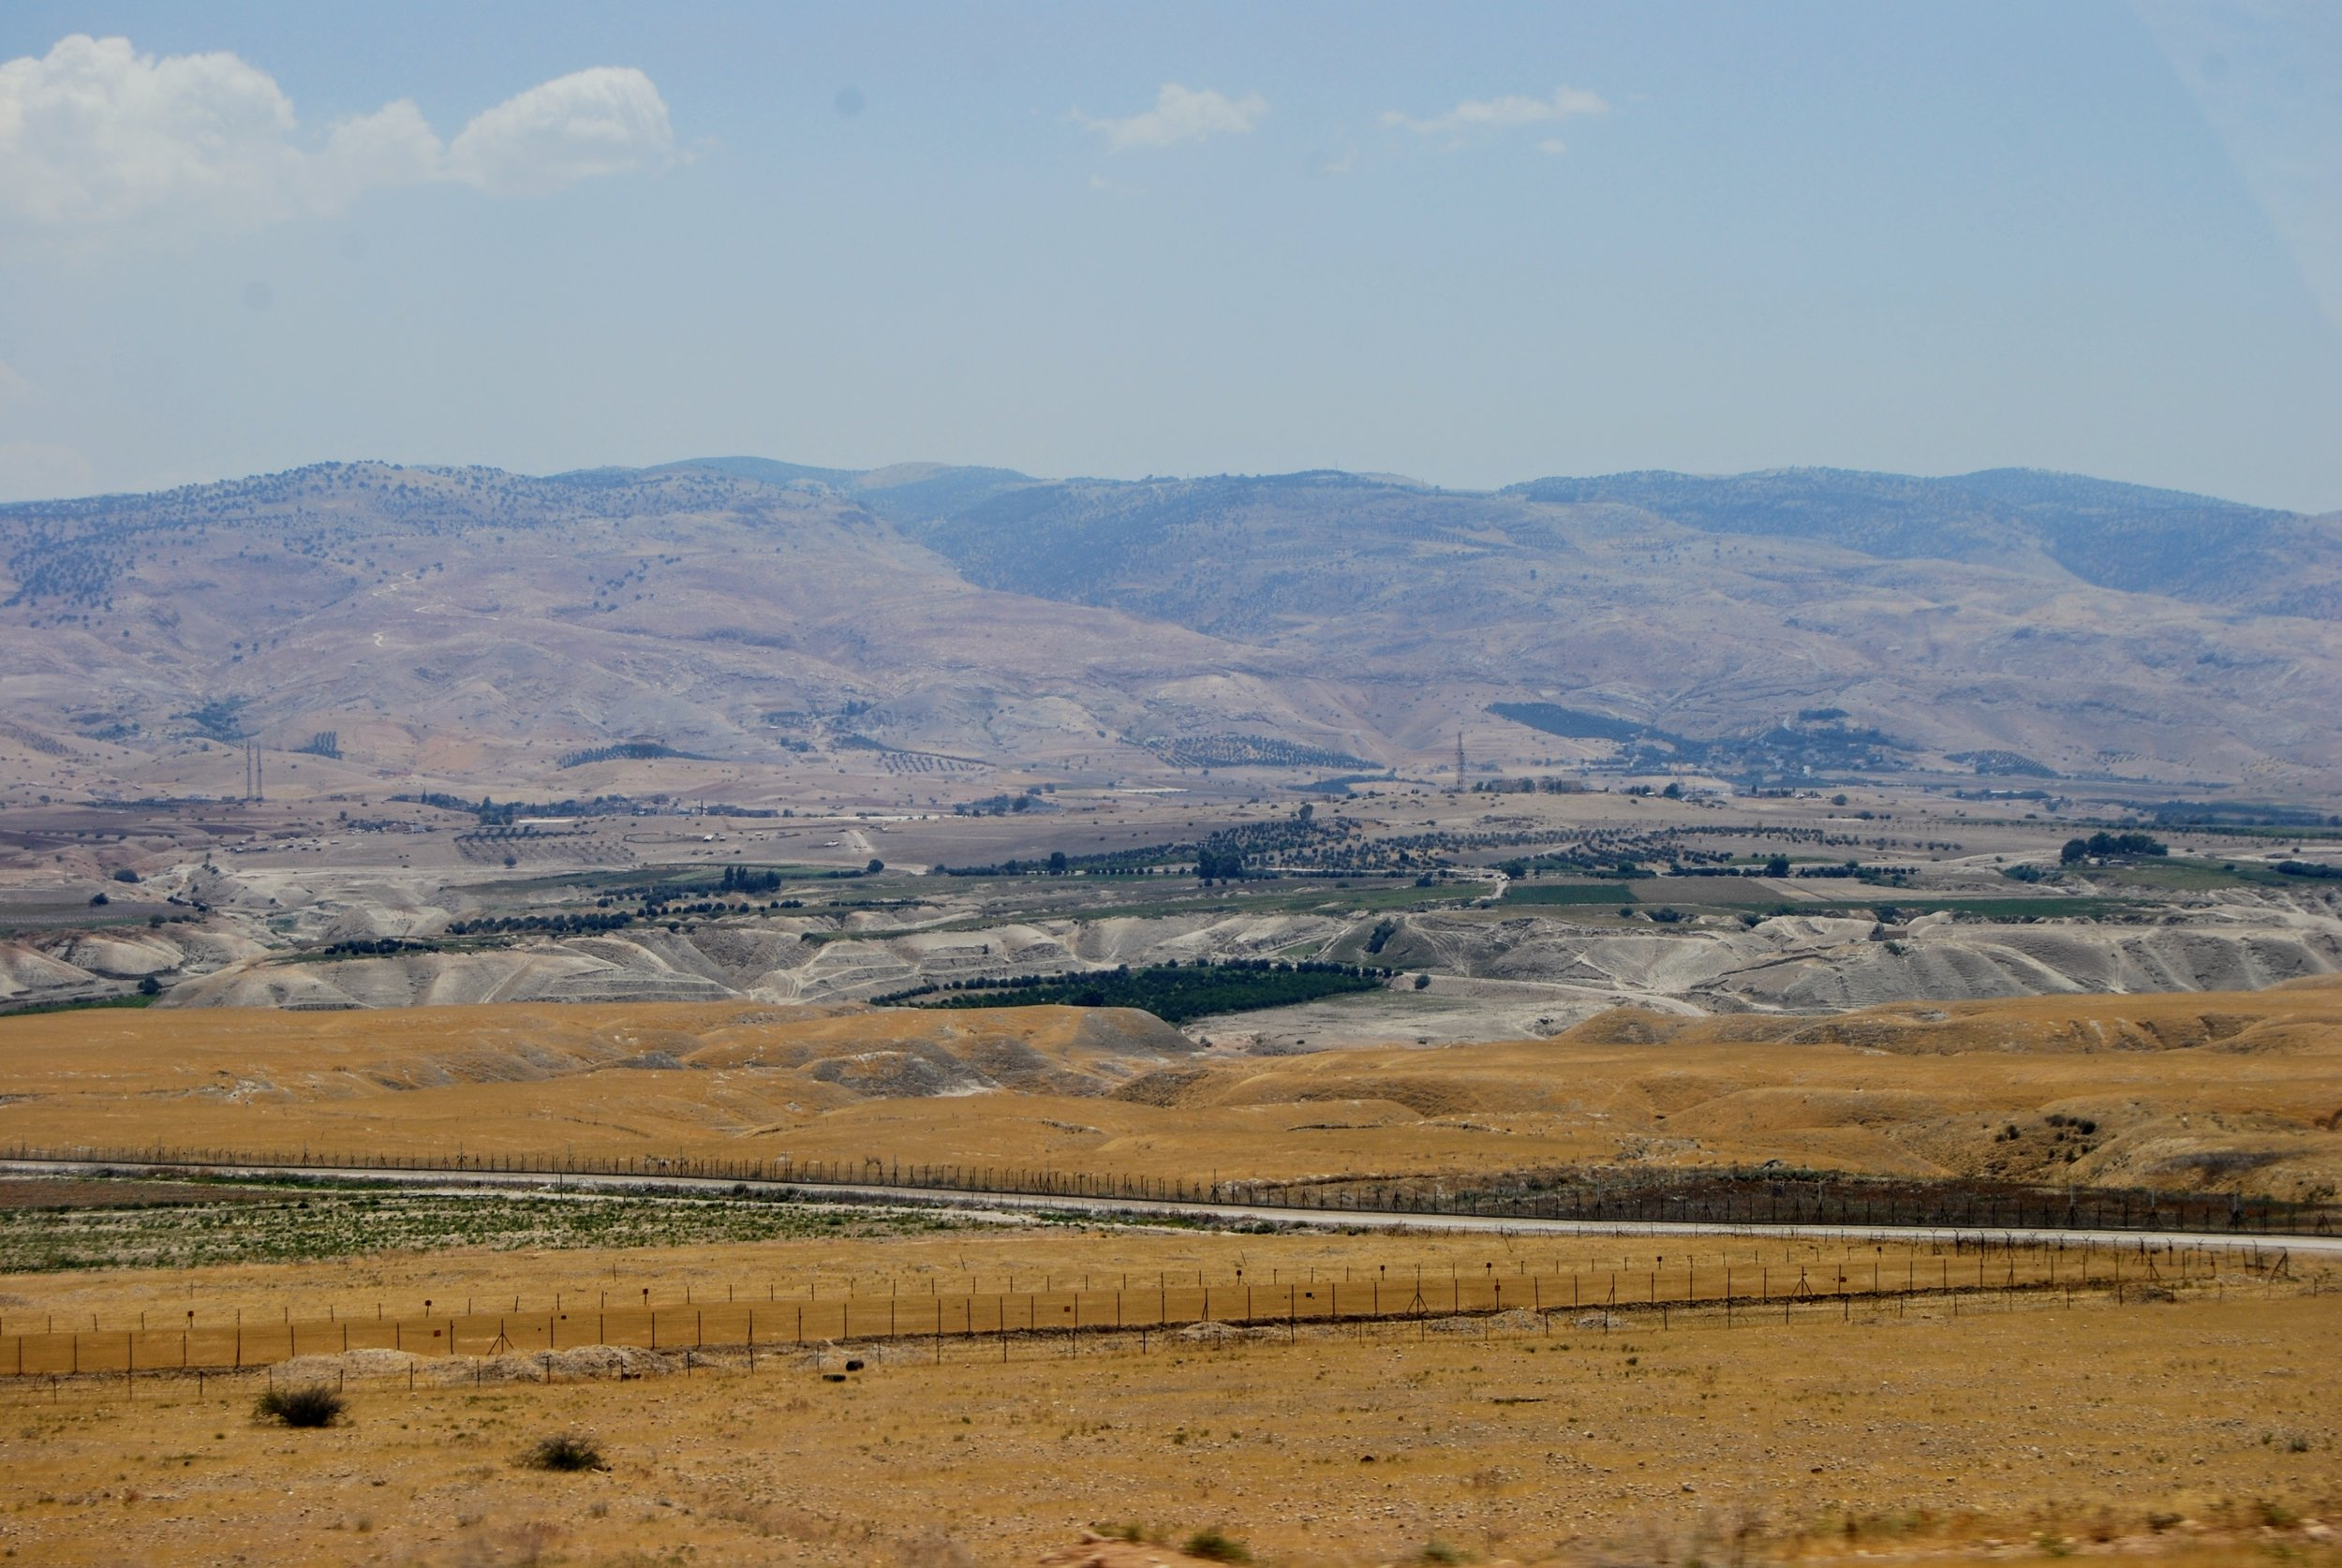 Looking east across the Jordan Valley toward the Trans-Jordan Plateau.